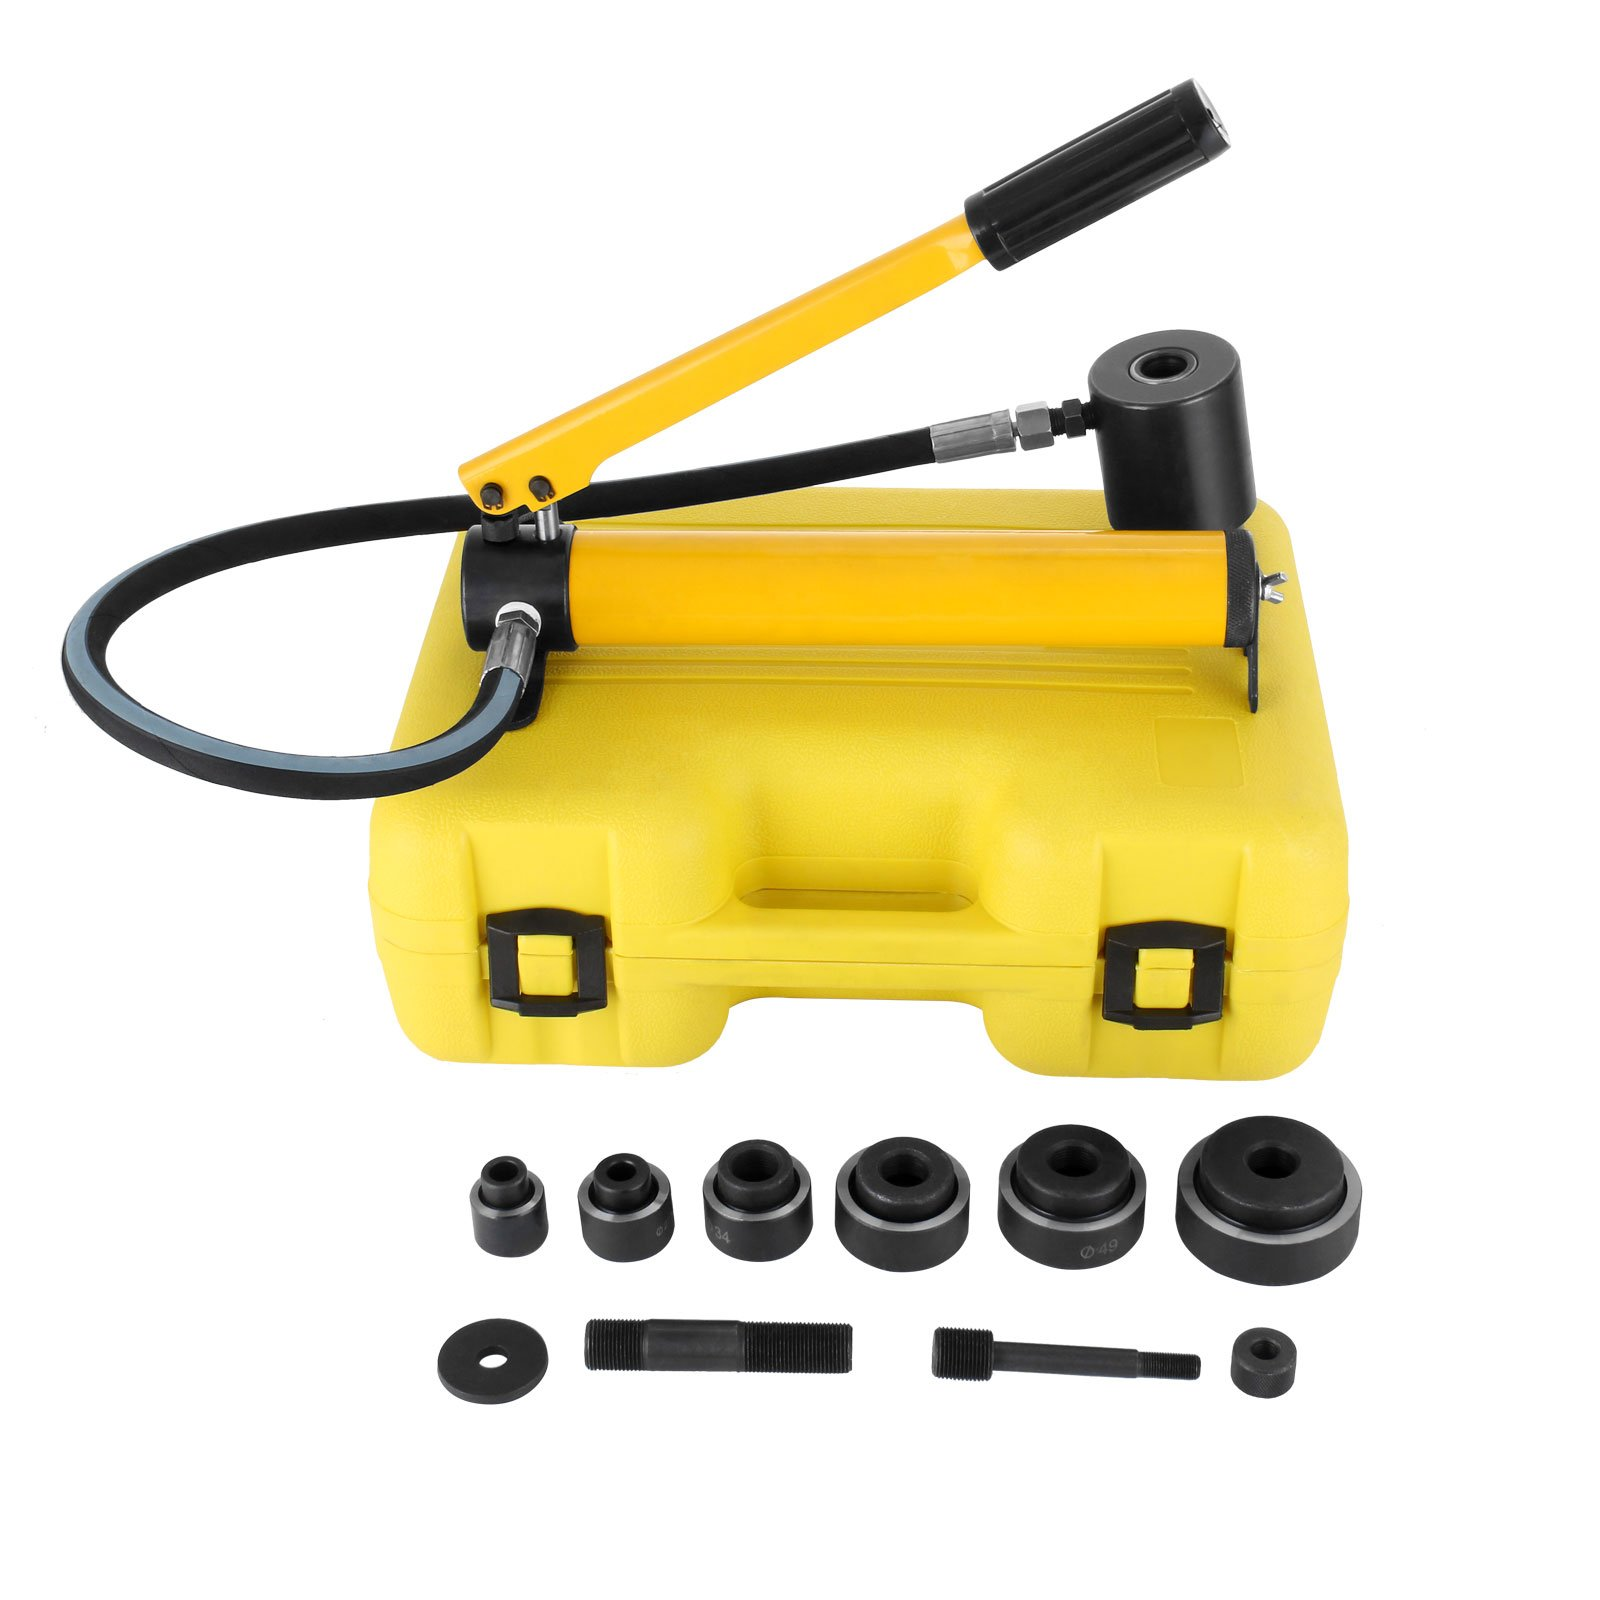 BestEquip Knockout Sets 10 Ton 1/2'' to 2'' Hydraulic Knockout Punch 6 Dies Hand Pump Hole Tool with Plastic Carrying Case (10 Ton 6 Dies)